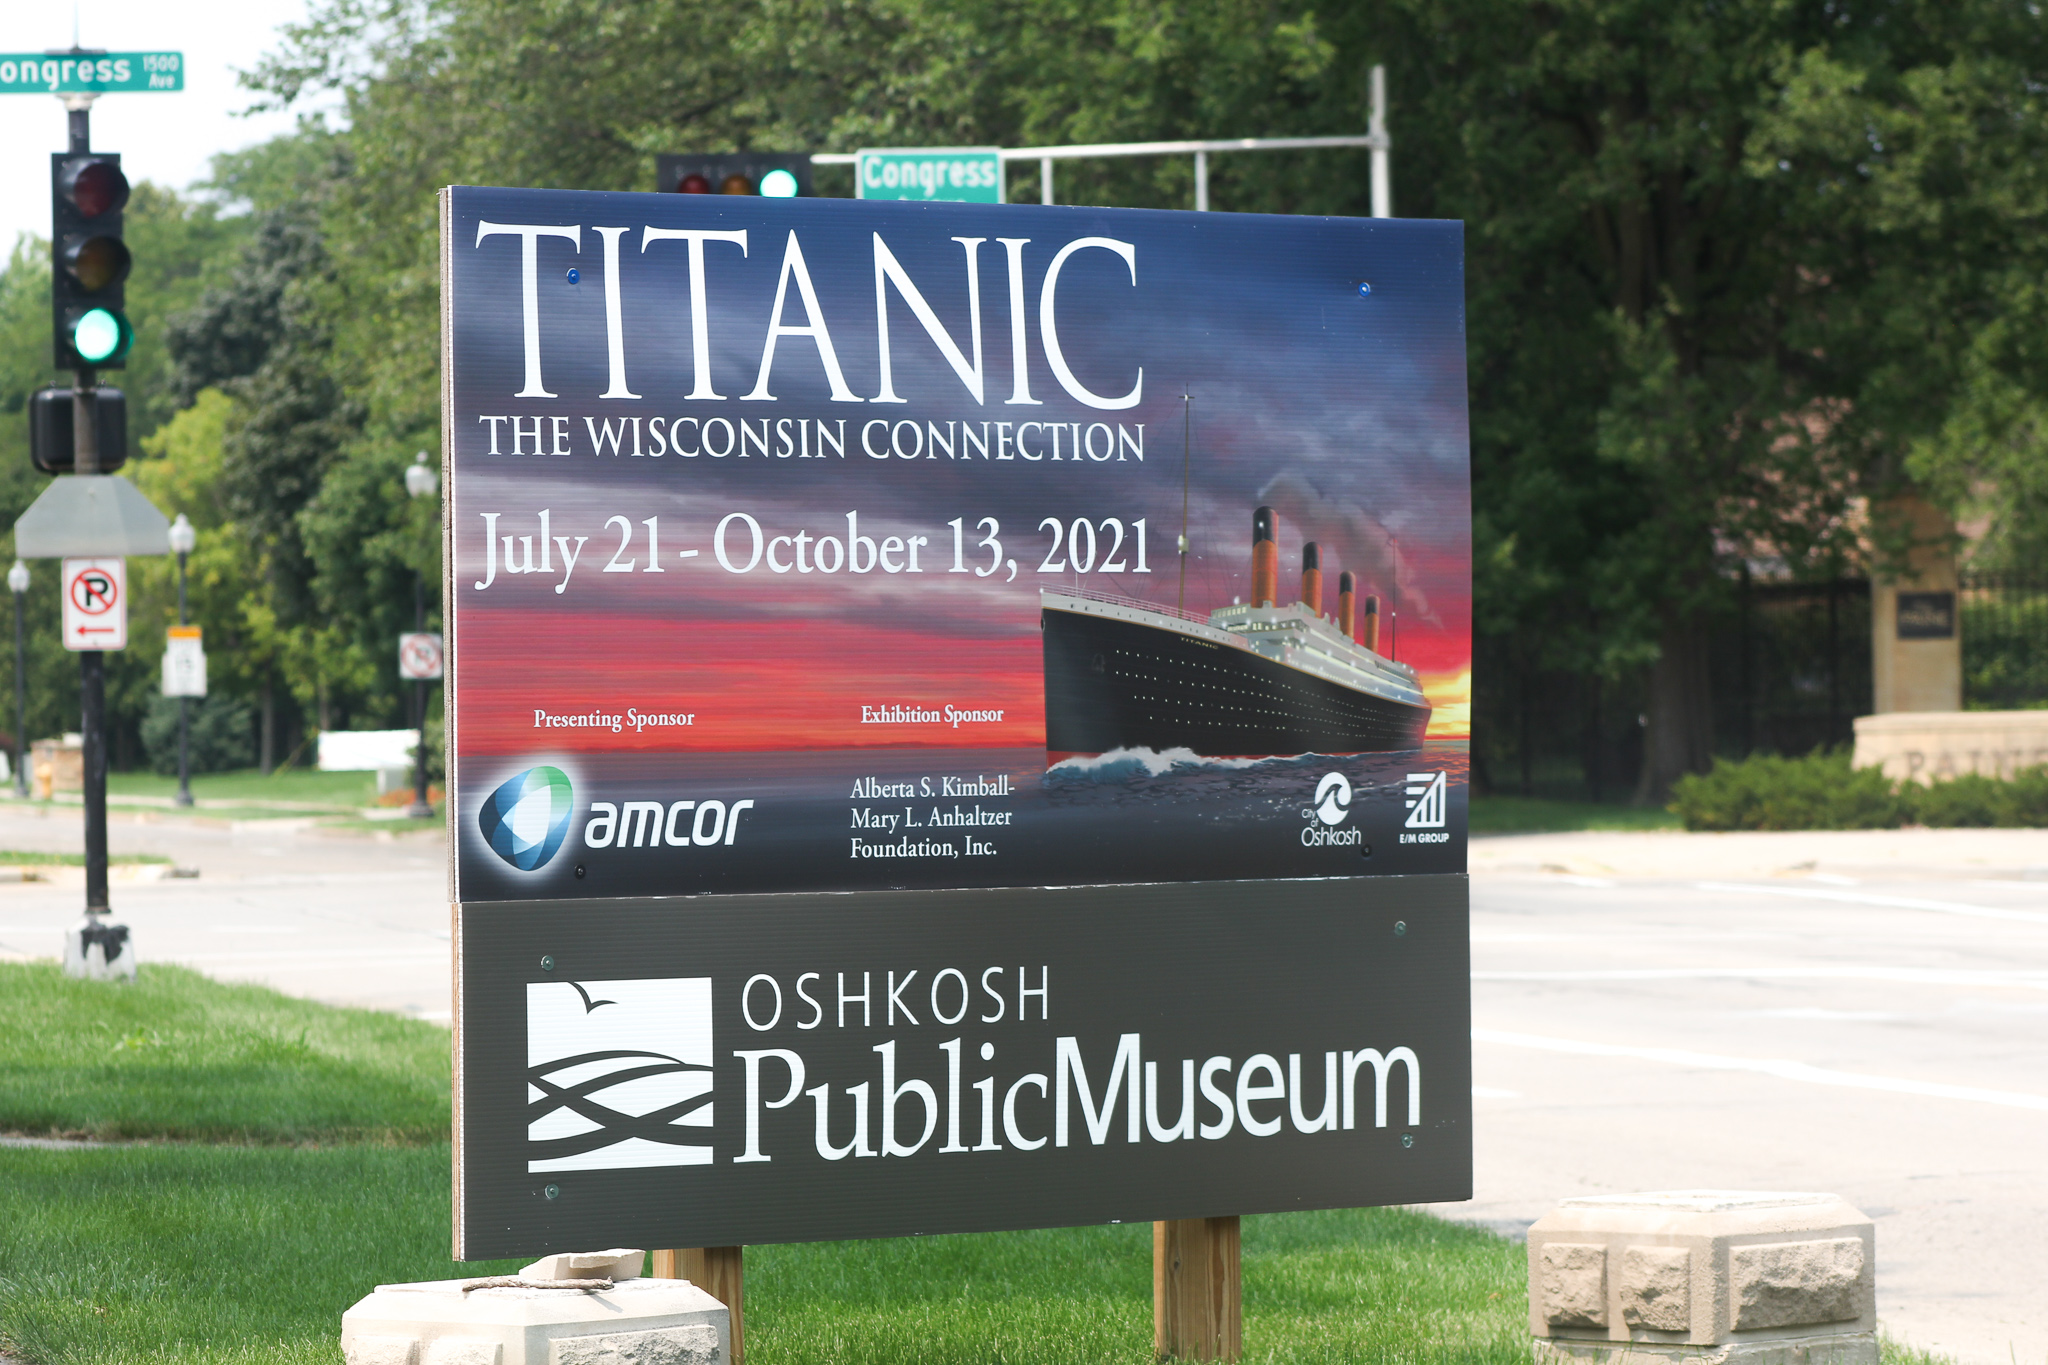 Titanic, the Wisconsin Connection at the Oshkosh Public Museum